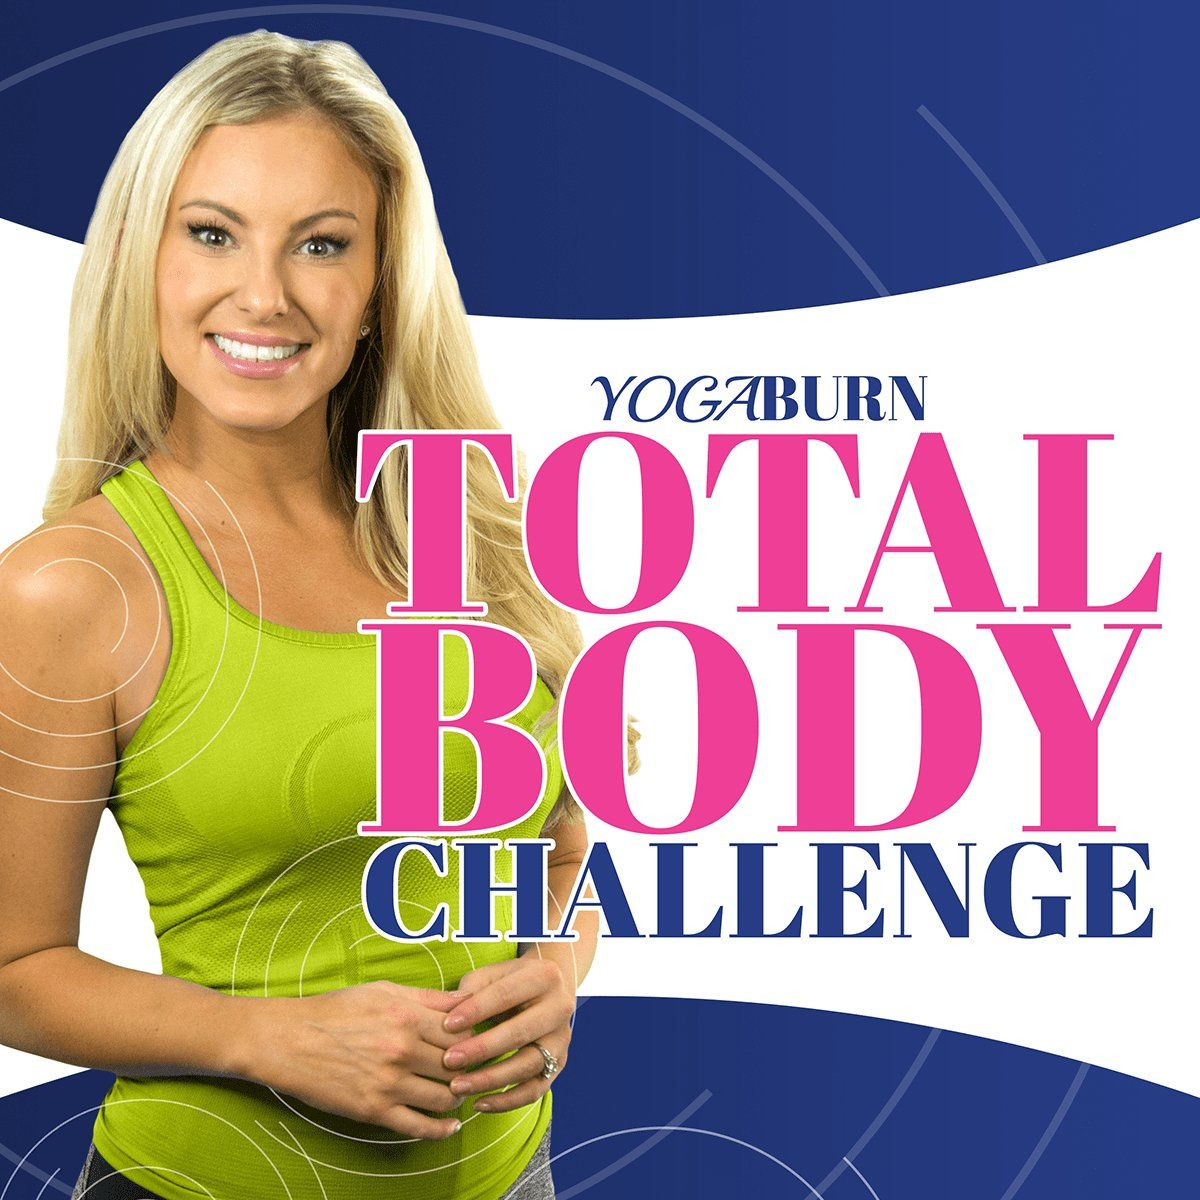 The Yoga Burn Total Body Challenge Is A 12 Week Follow Along From Home Fitness System For Women In Addition To Th Body Challenge 12 Week Challenge Total Body